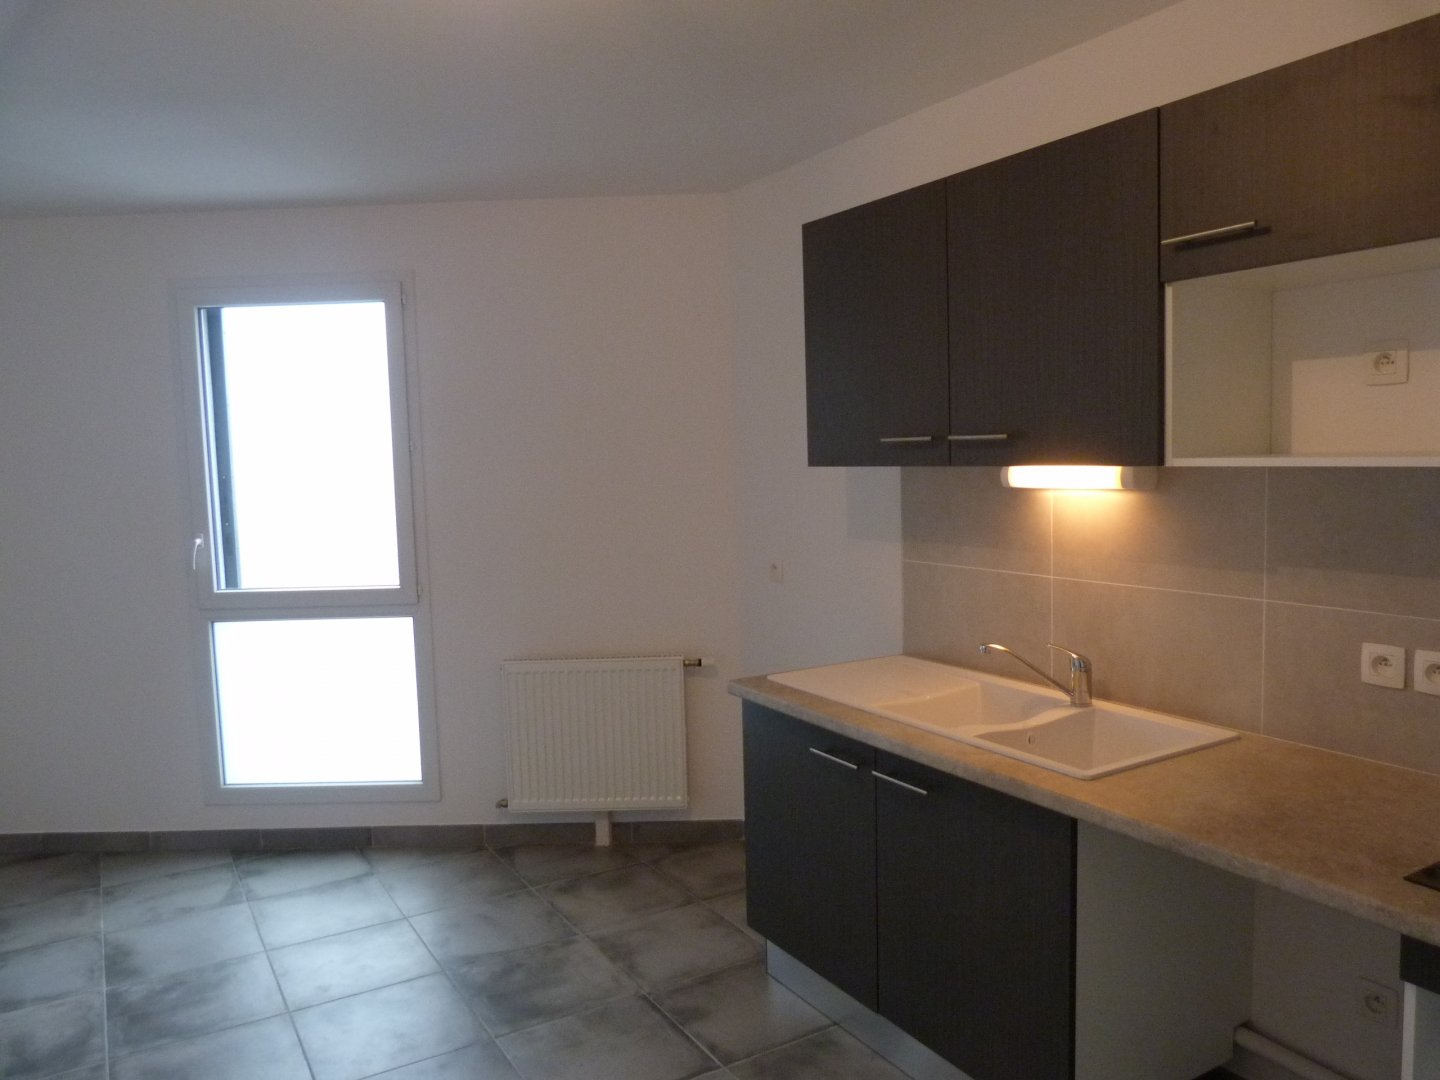 Location Appartement - Ramonville-Saint-Agne